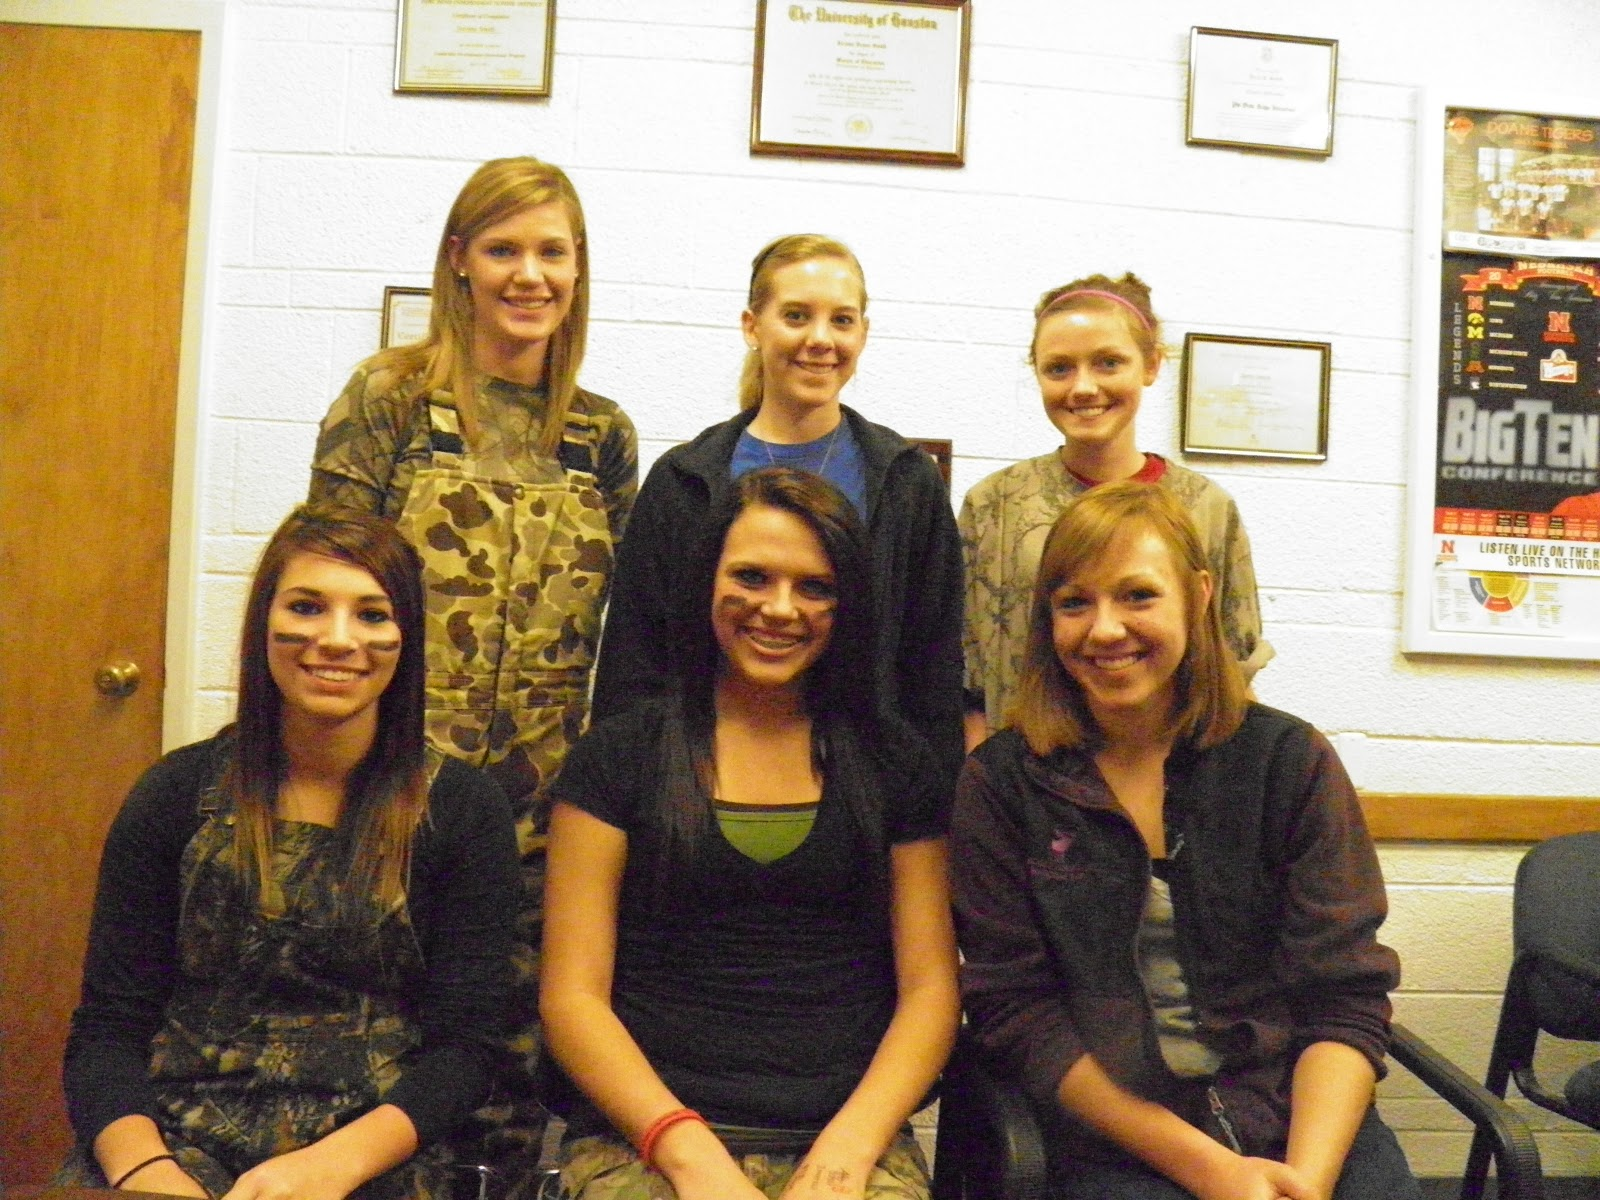 high school homecoming essays The 2016 napoleon high school homecoming court includes (front row, from left) hannah behm, sophomore attendant allison mack, junior attendant sarah borkowski.